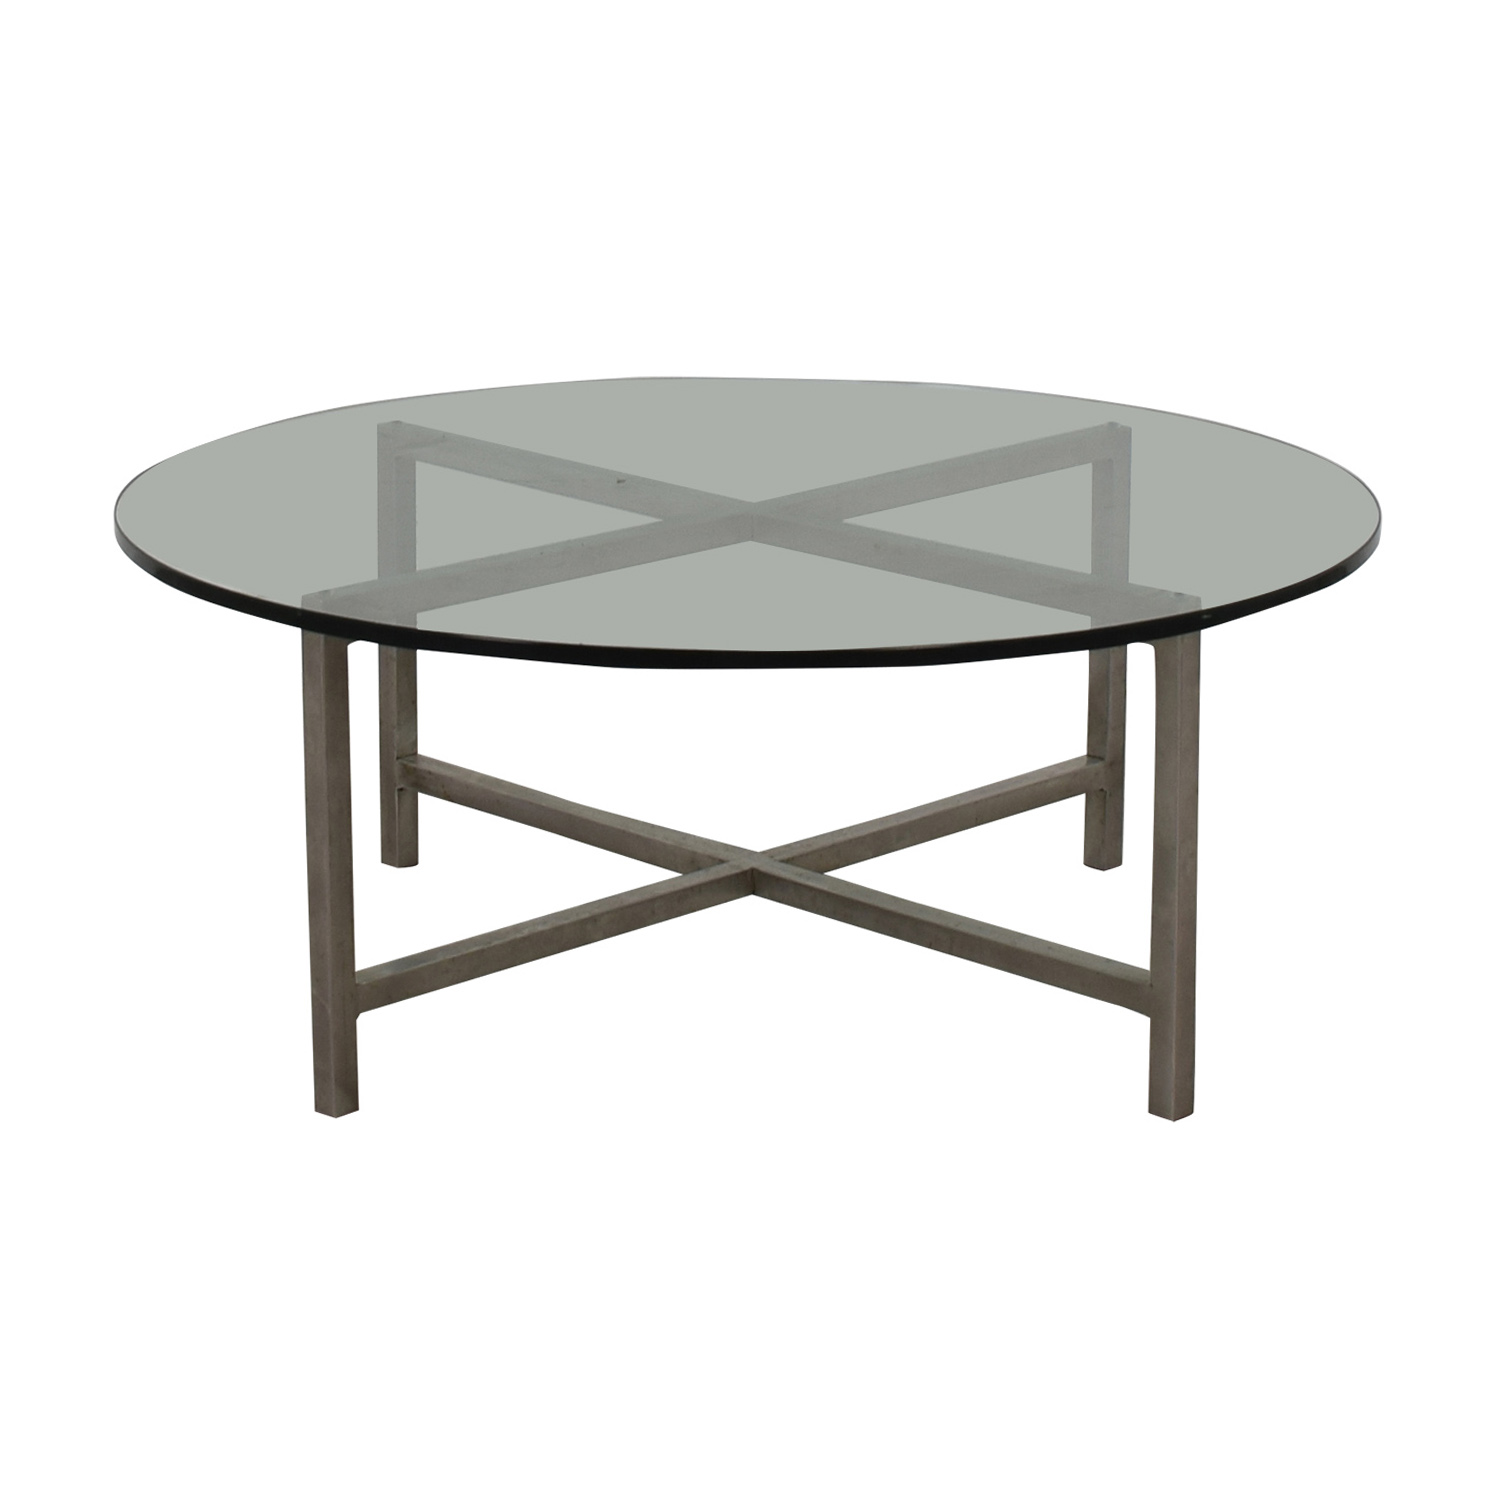 Crate & Barrel Round Glass and Chrome Table Crate & Barrel